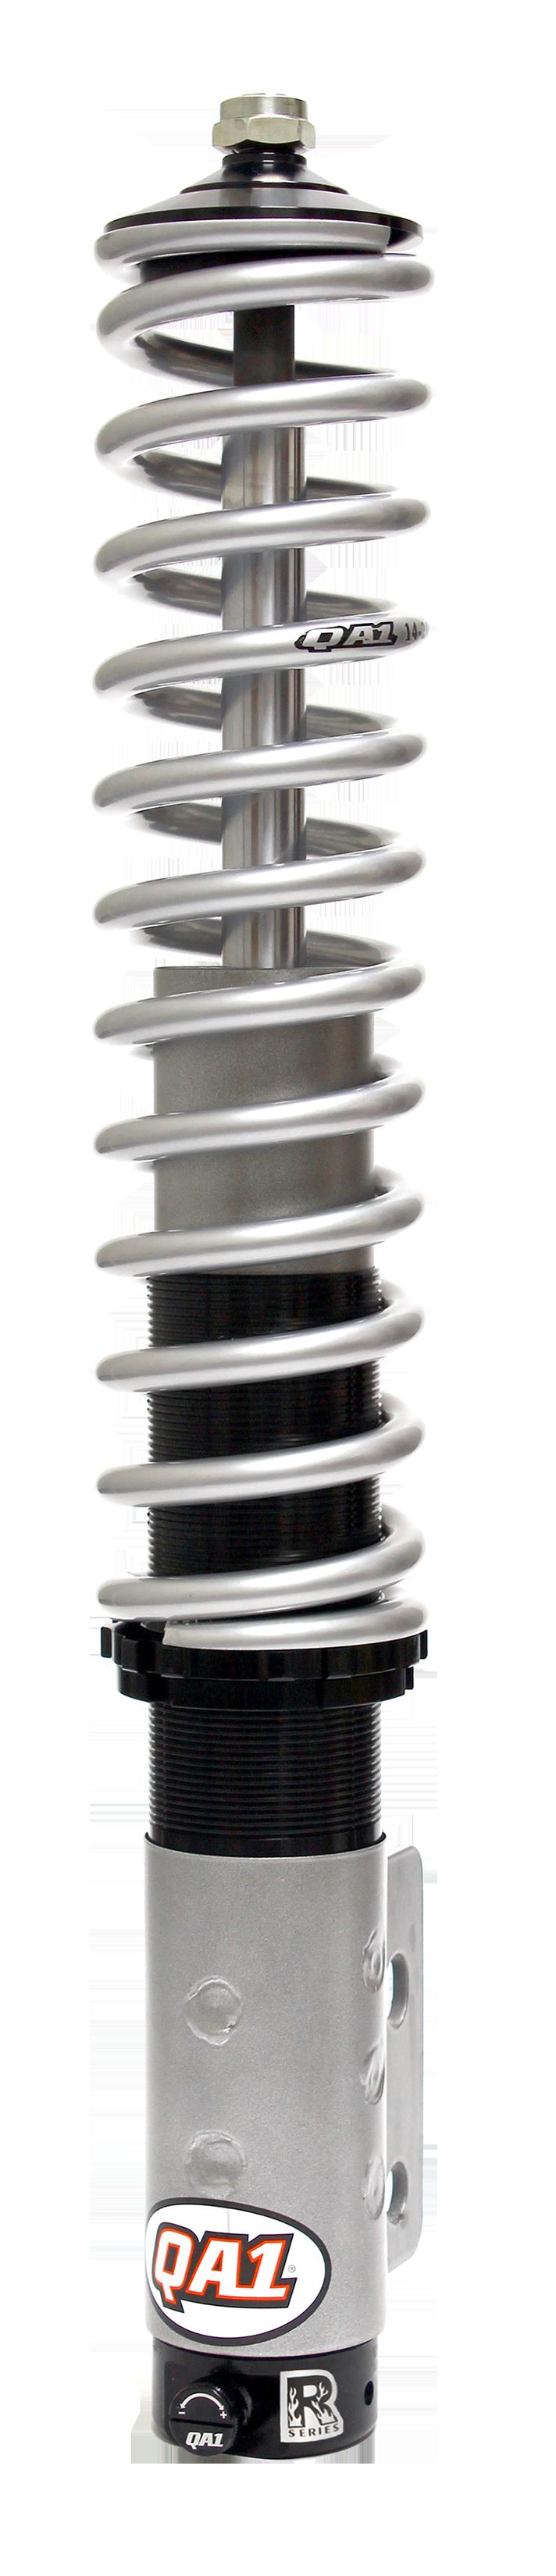 Suspension Strut and Coil Spring Kit